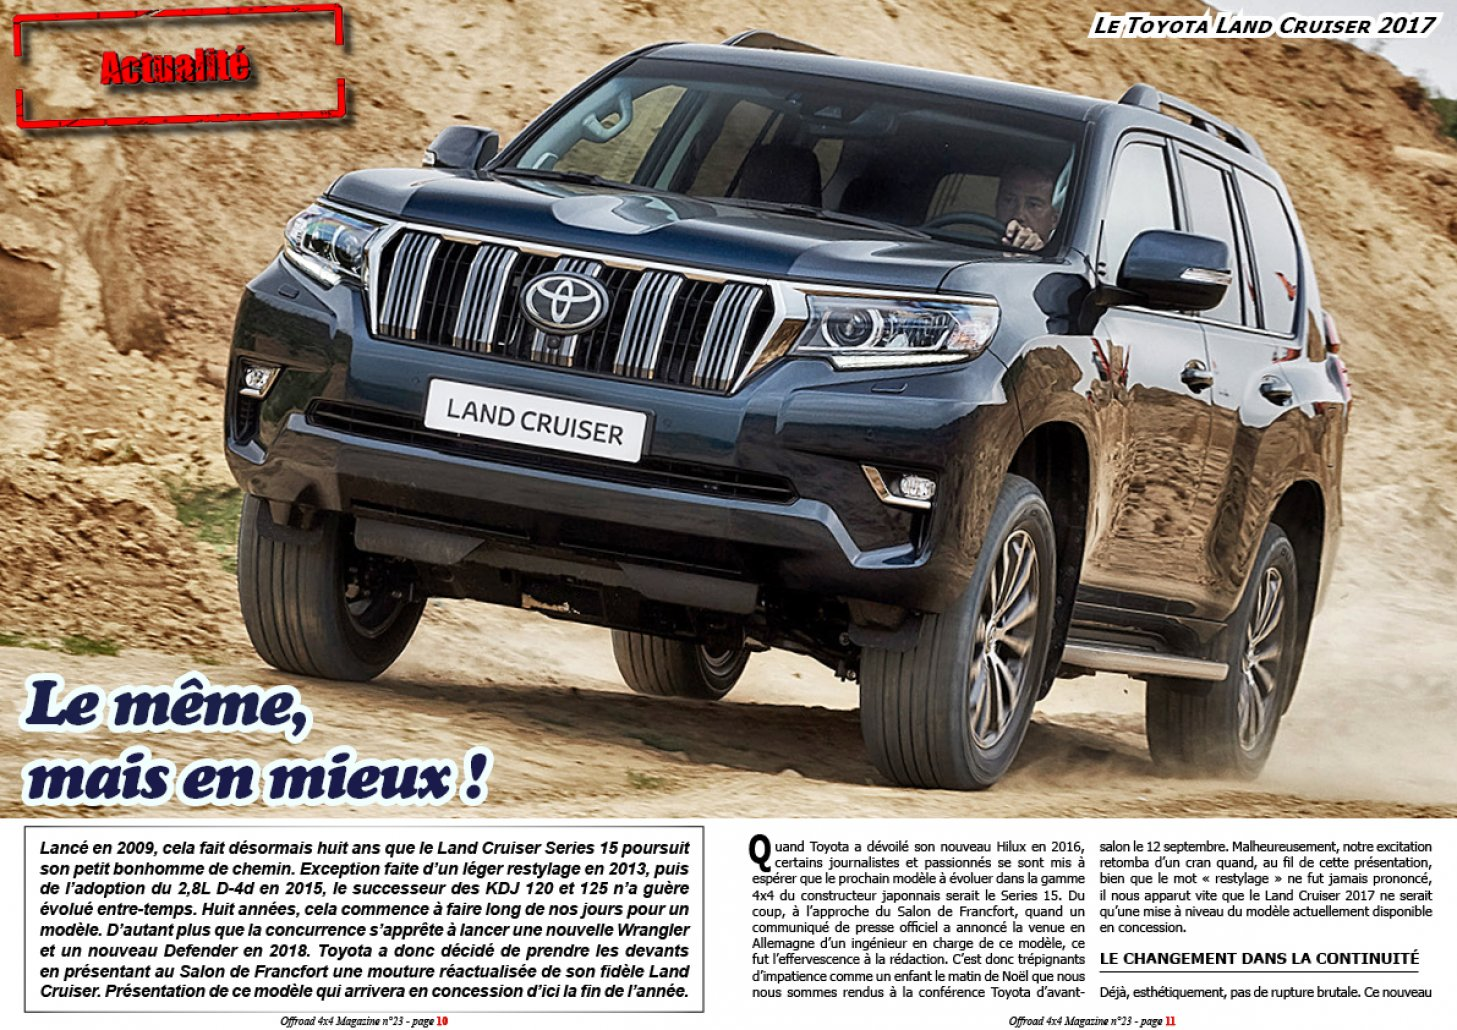 Le Toyota Land Cruiser 2017